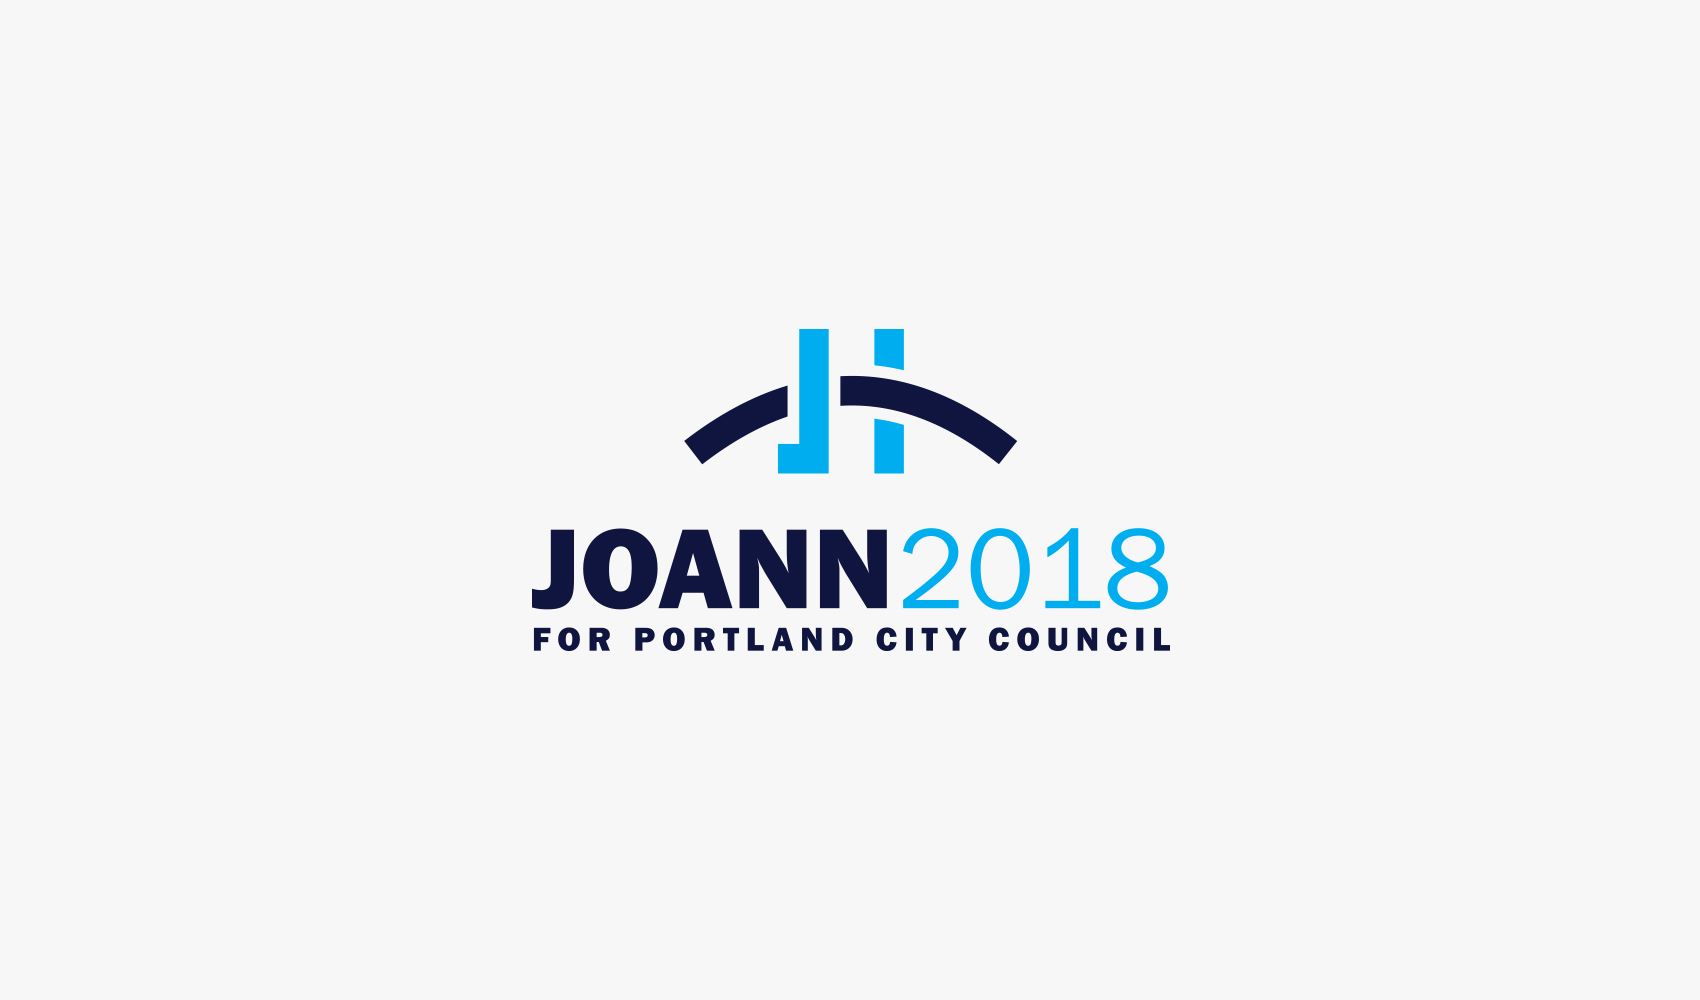 Jo Ann for Portland City Council